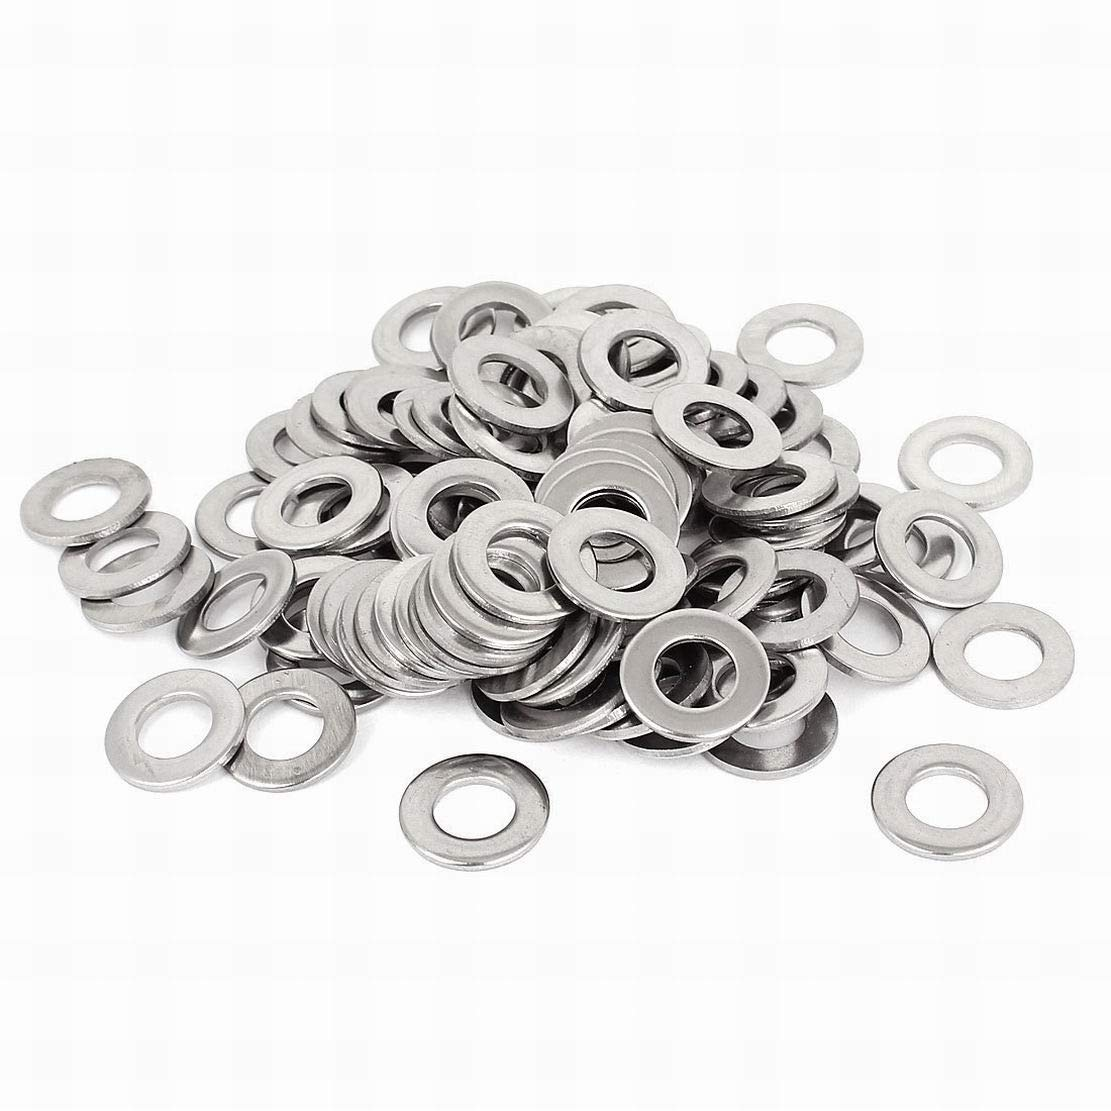 Silver Tone 304 Stainless Steel Flat Washer 3/8-inch 100pcs for Screws Houseuse